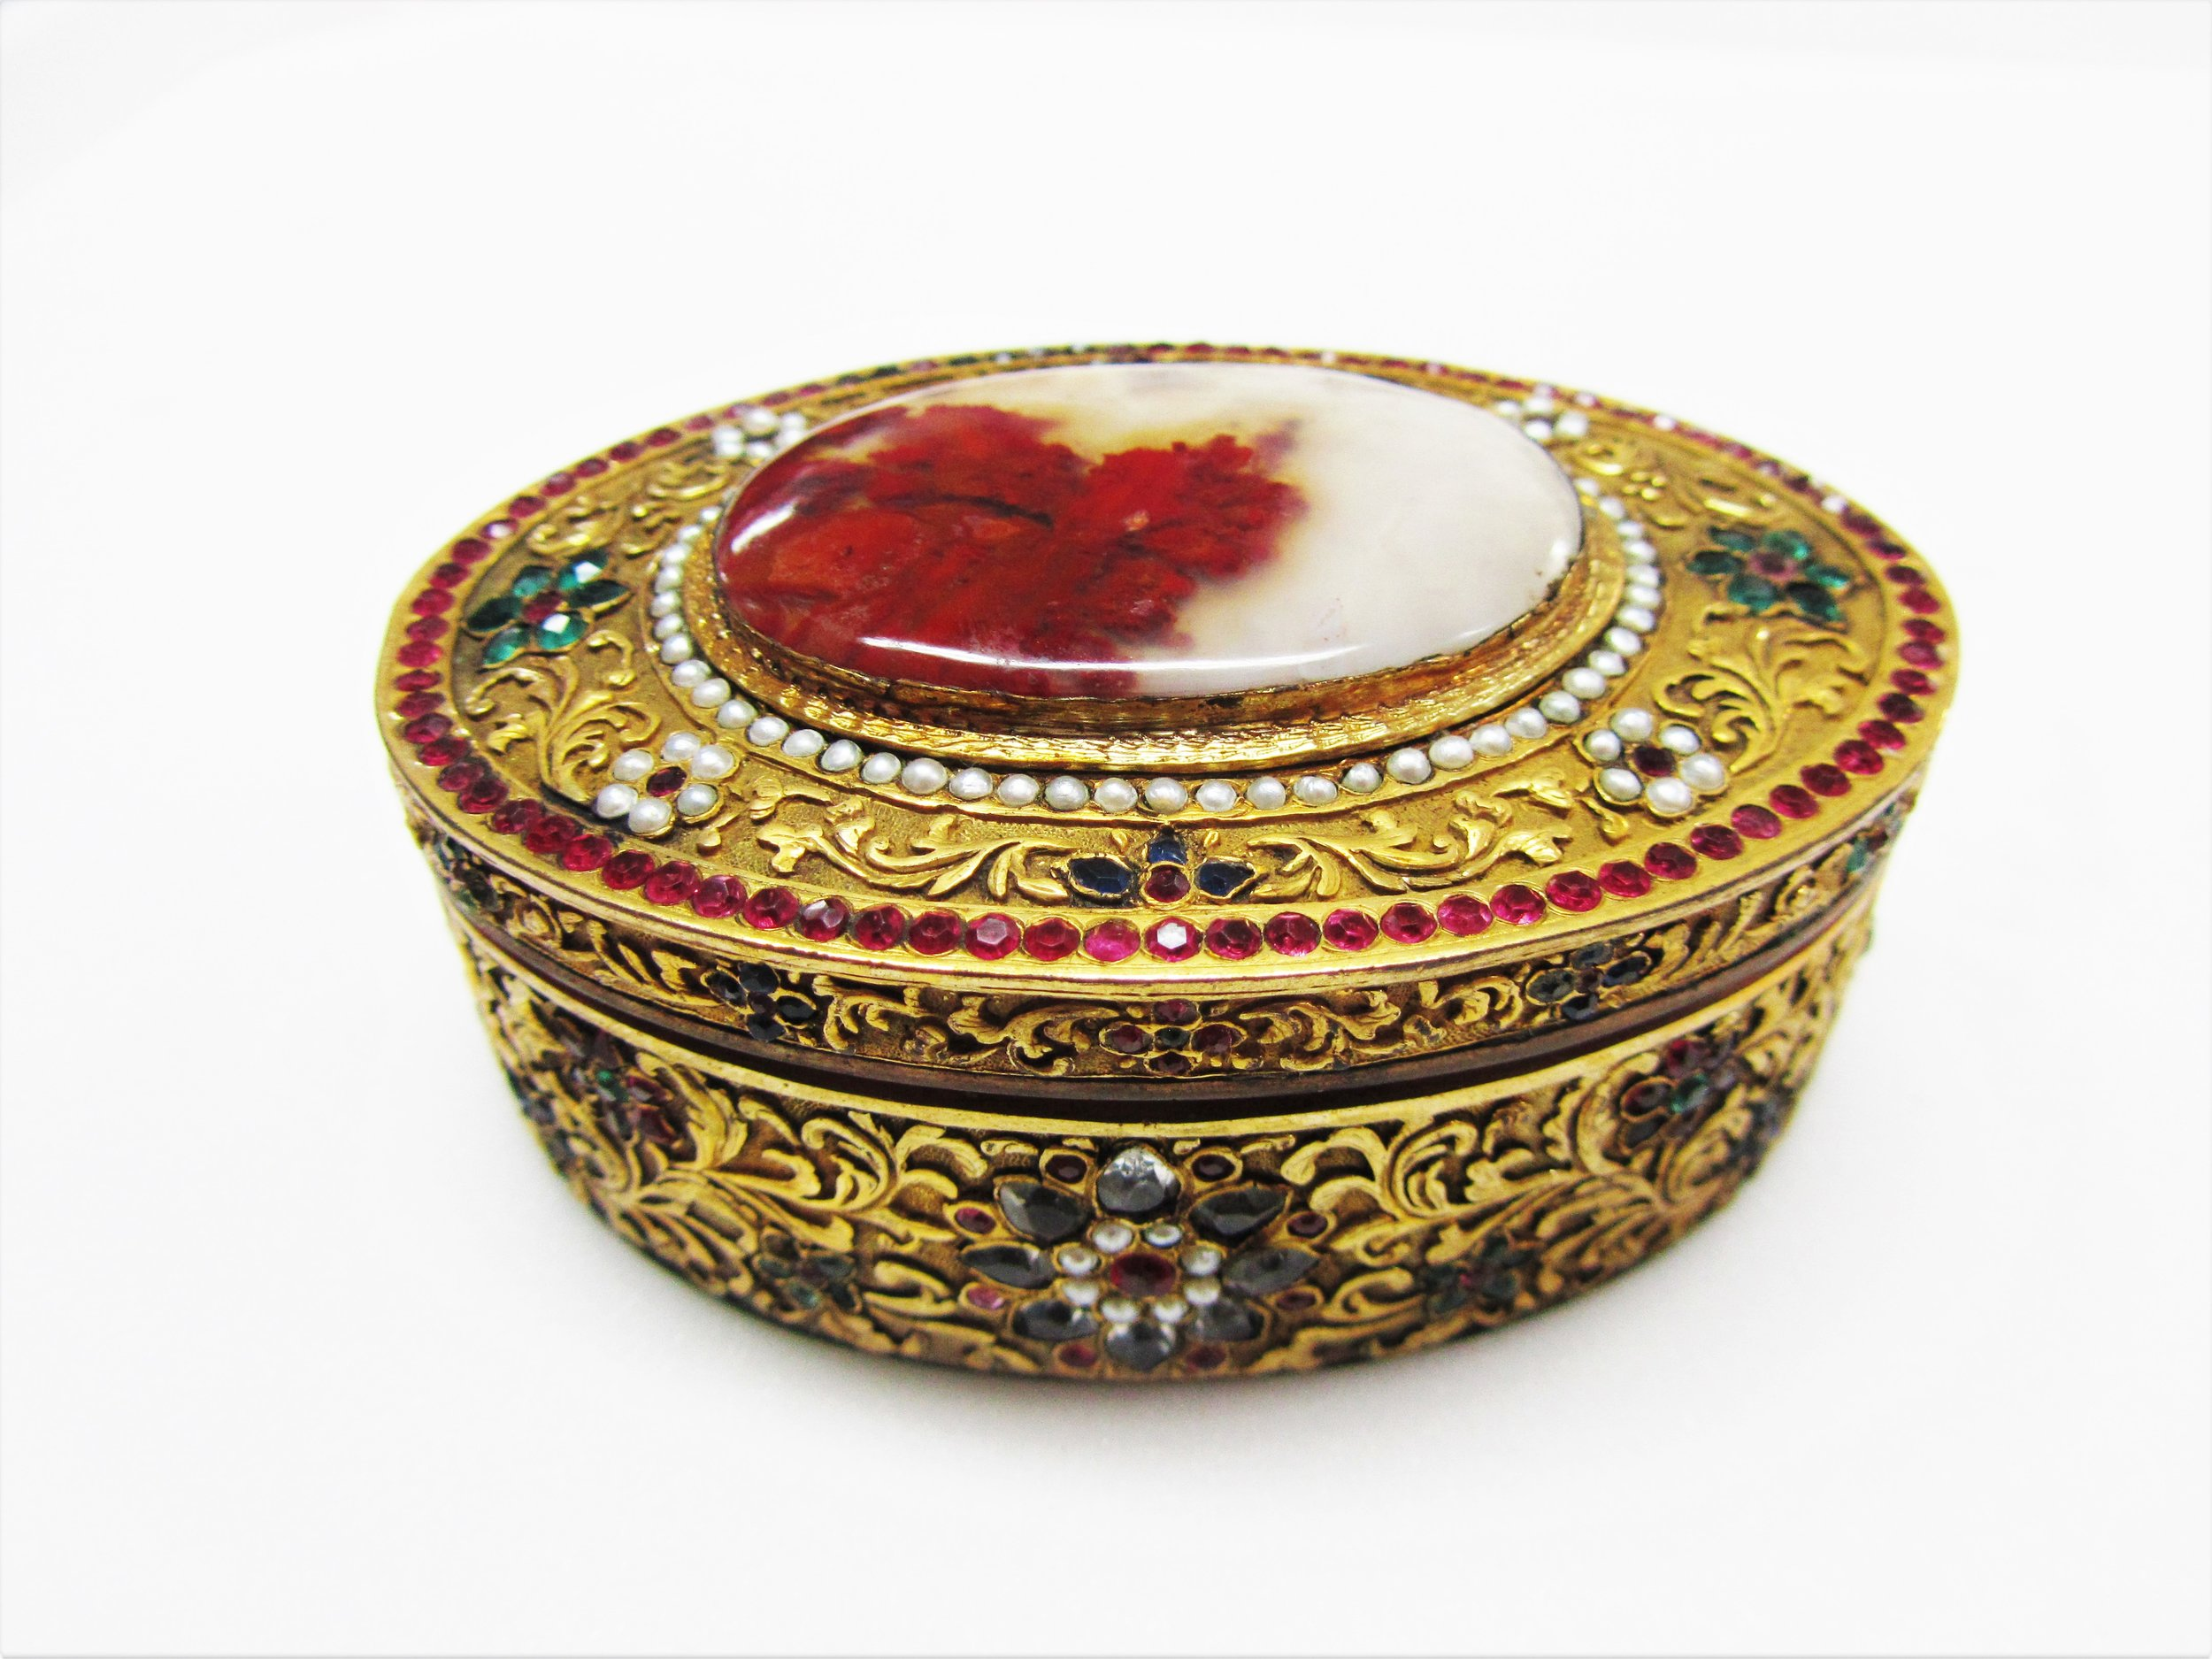 jade mellor goldsmiths centre museum of london drawing snuff trinket box agate.JPG